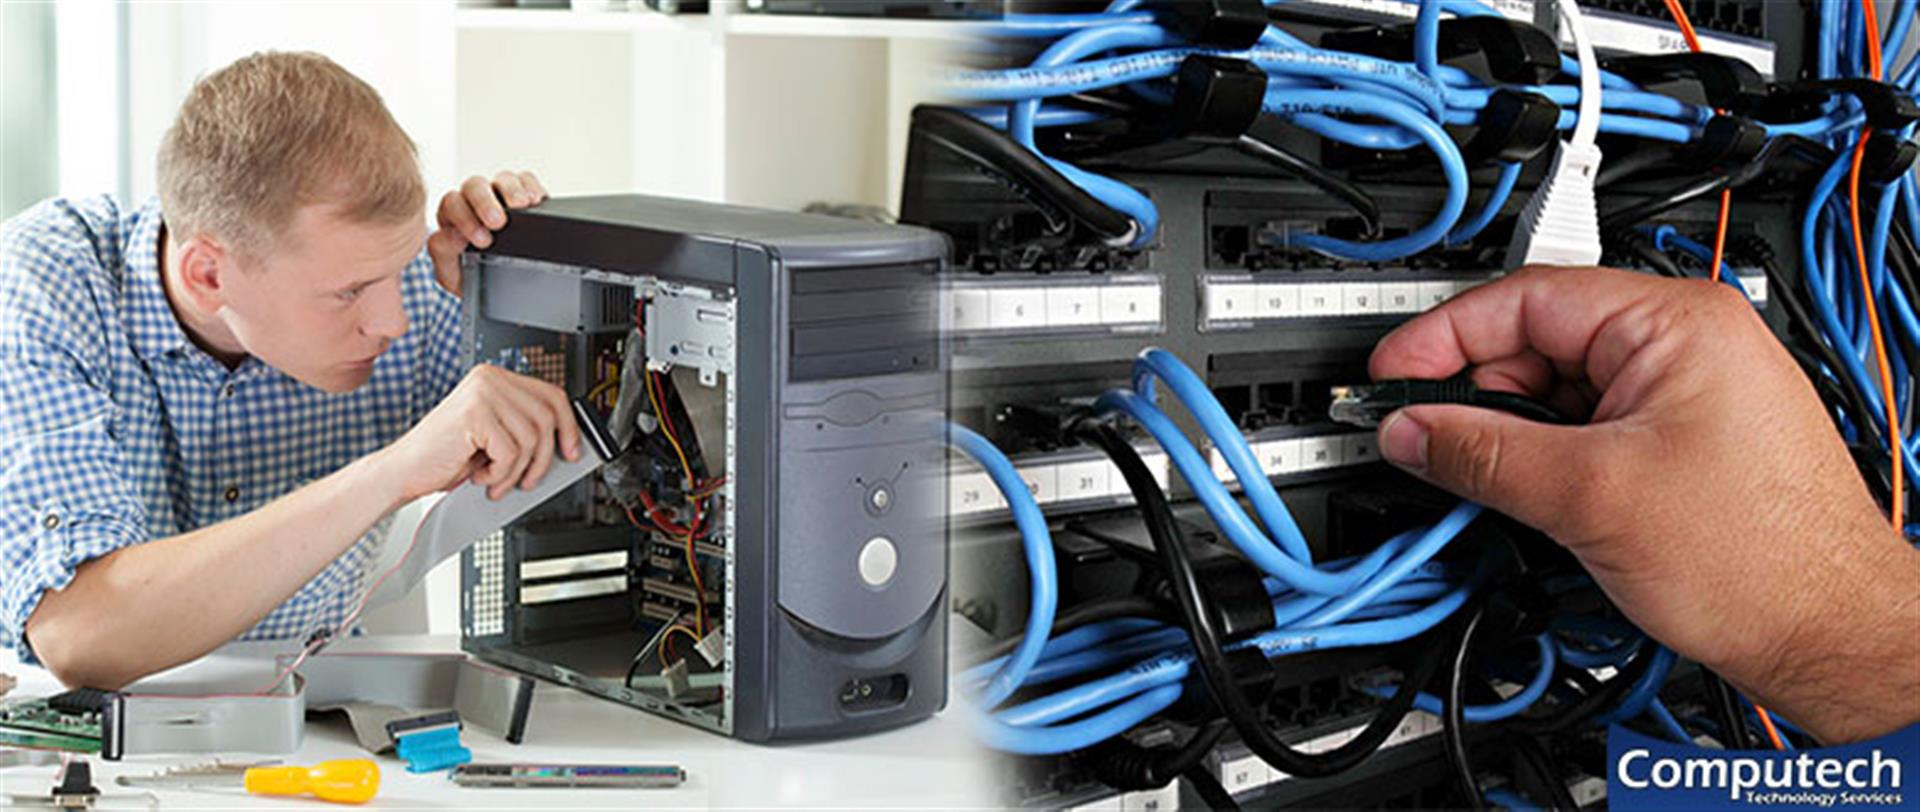 Carrollton Georgia On Site PC & Printer Repairs, Networking, Voice & Data Cabling Solutions